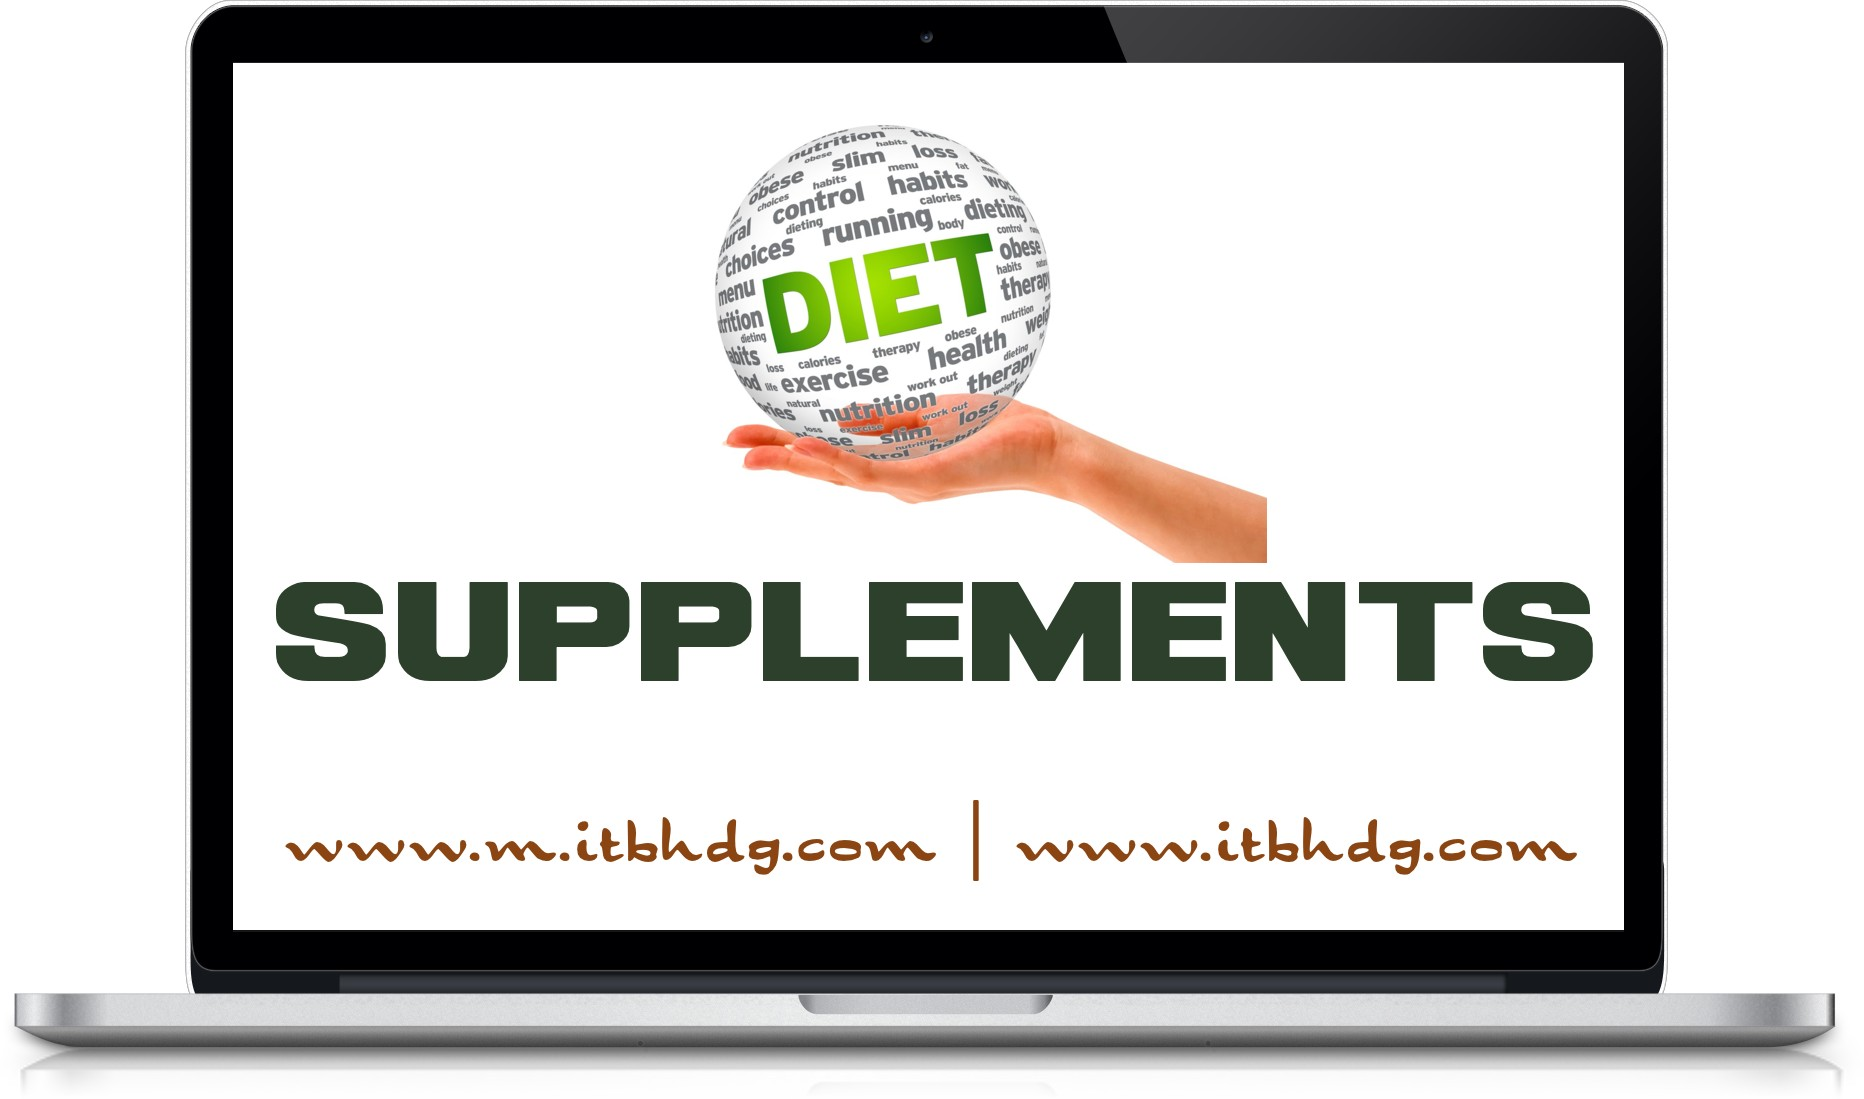 FDA Registration of your Dietary Supplements Company and Products | www.m.itbhdg.com | www.itbhdg.com